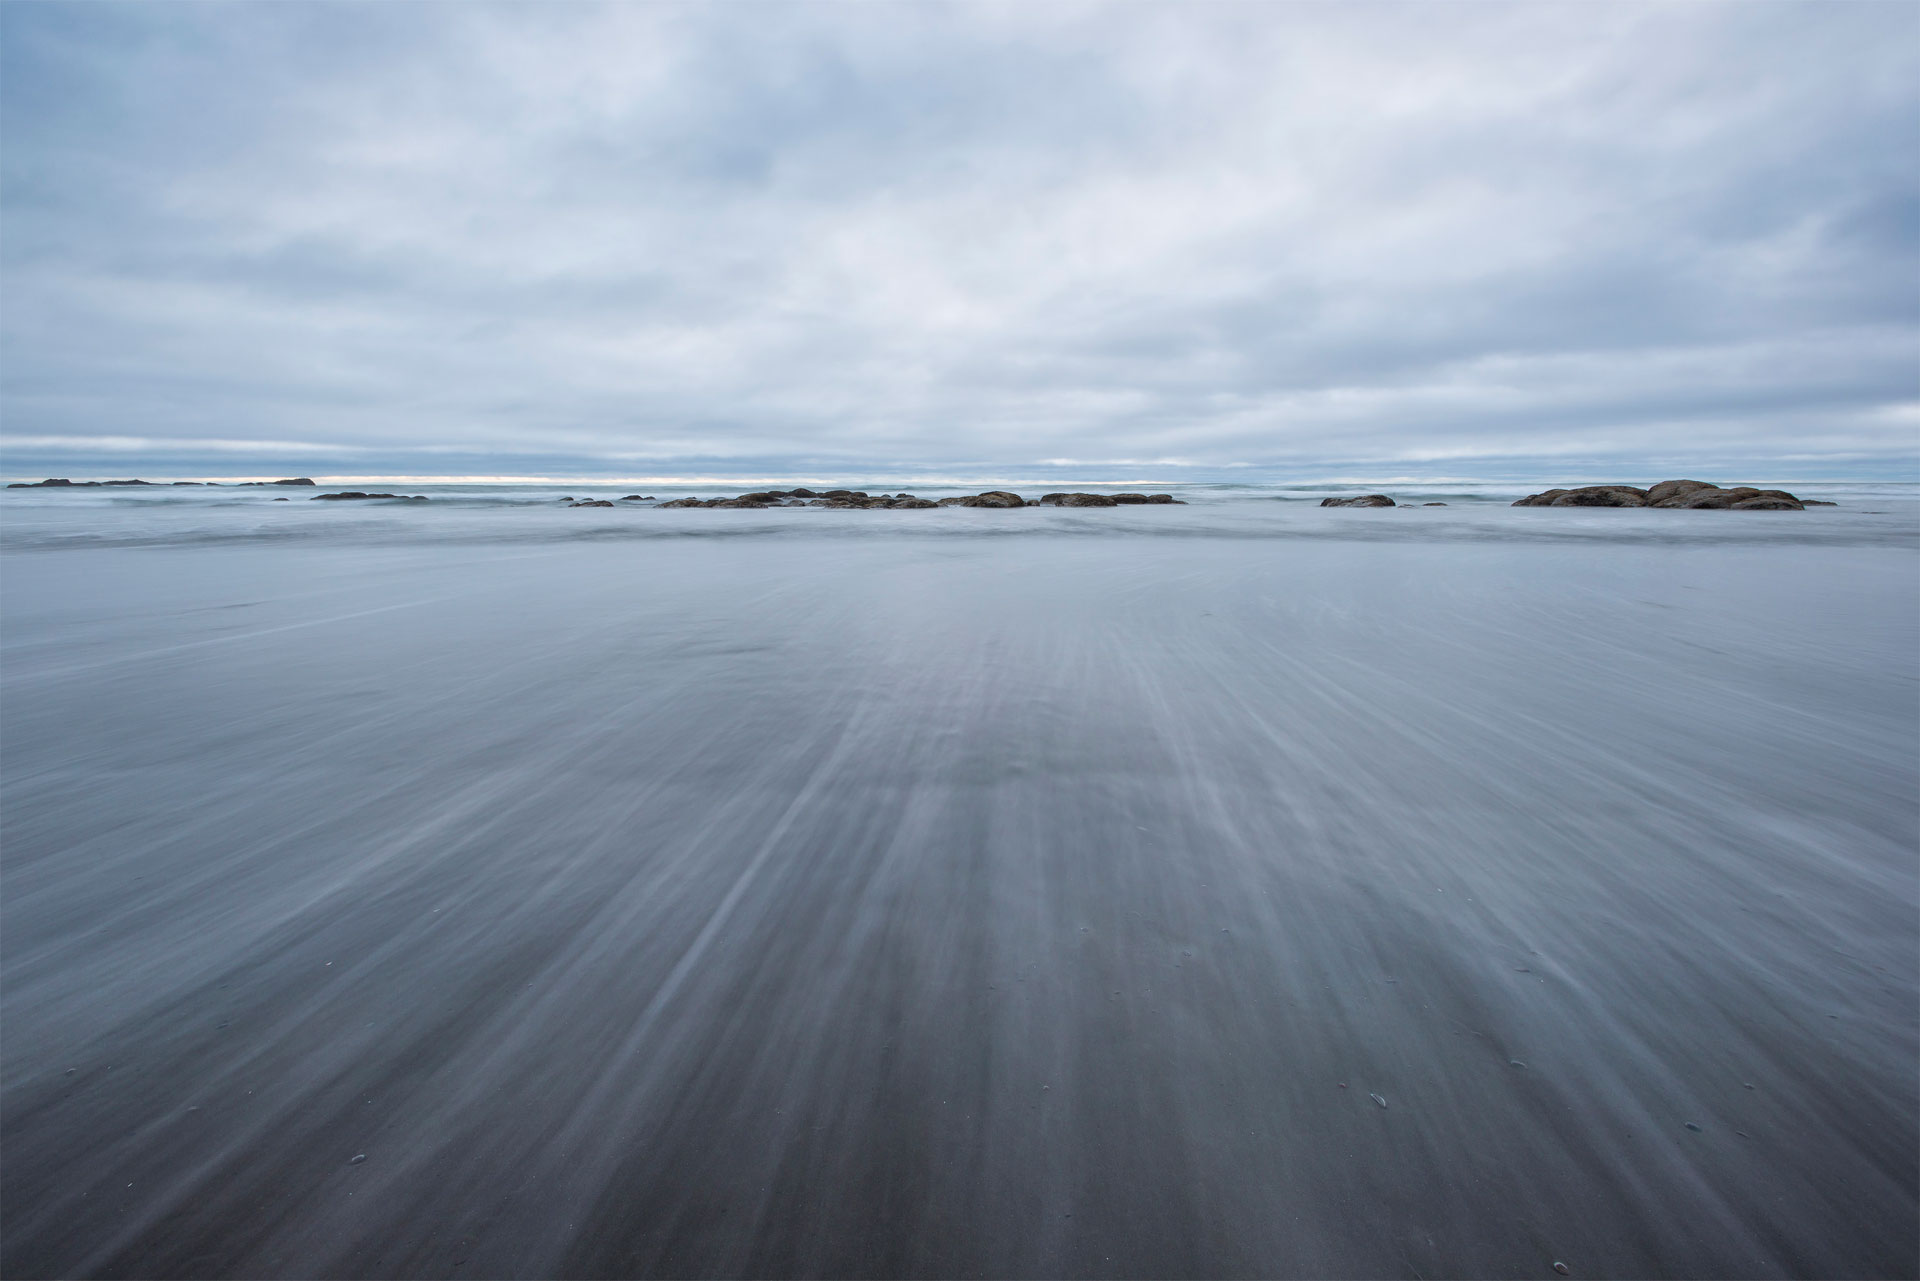 Image #3: Sunrise at Kalaloch Beach, WA